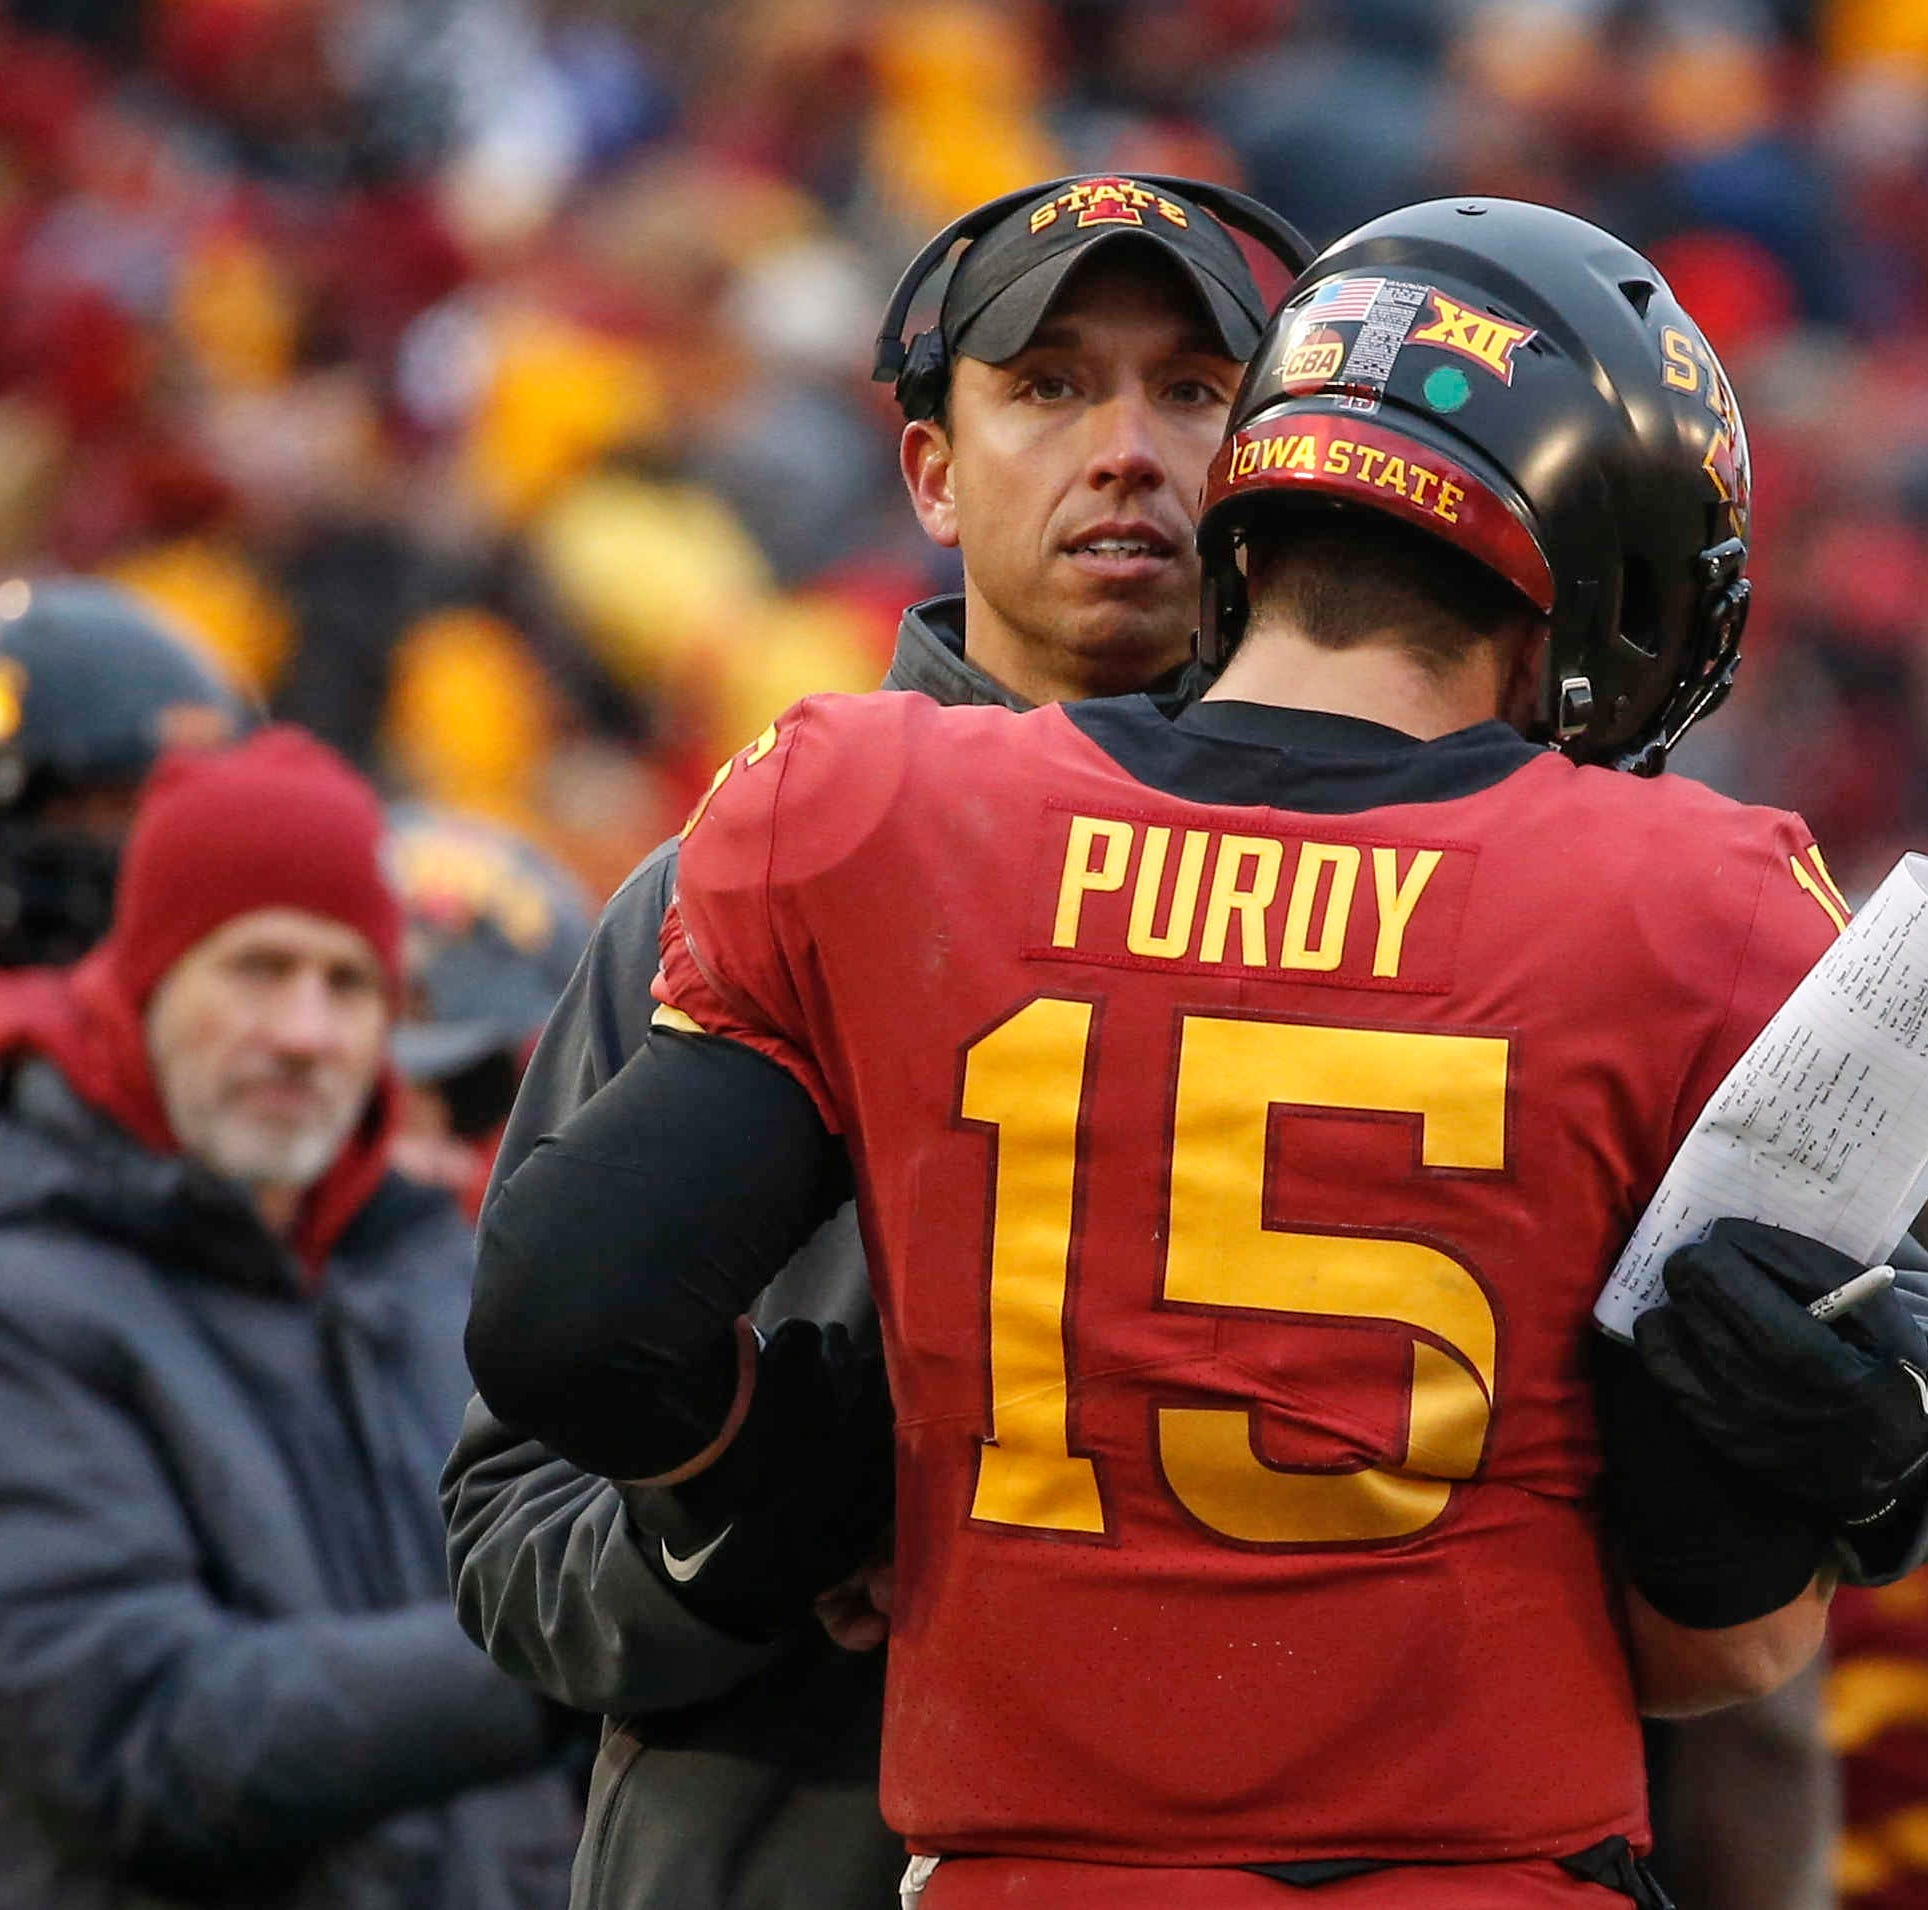 Iowa State adds a Kolar and a quarterback